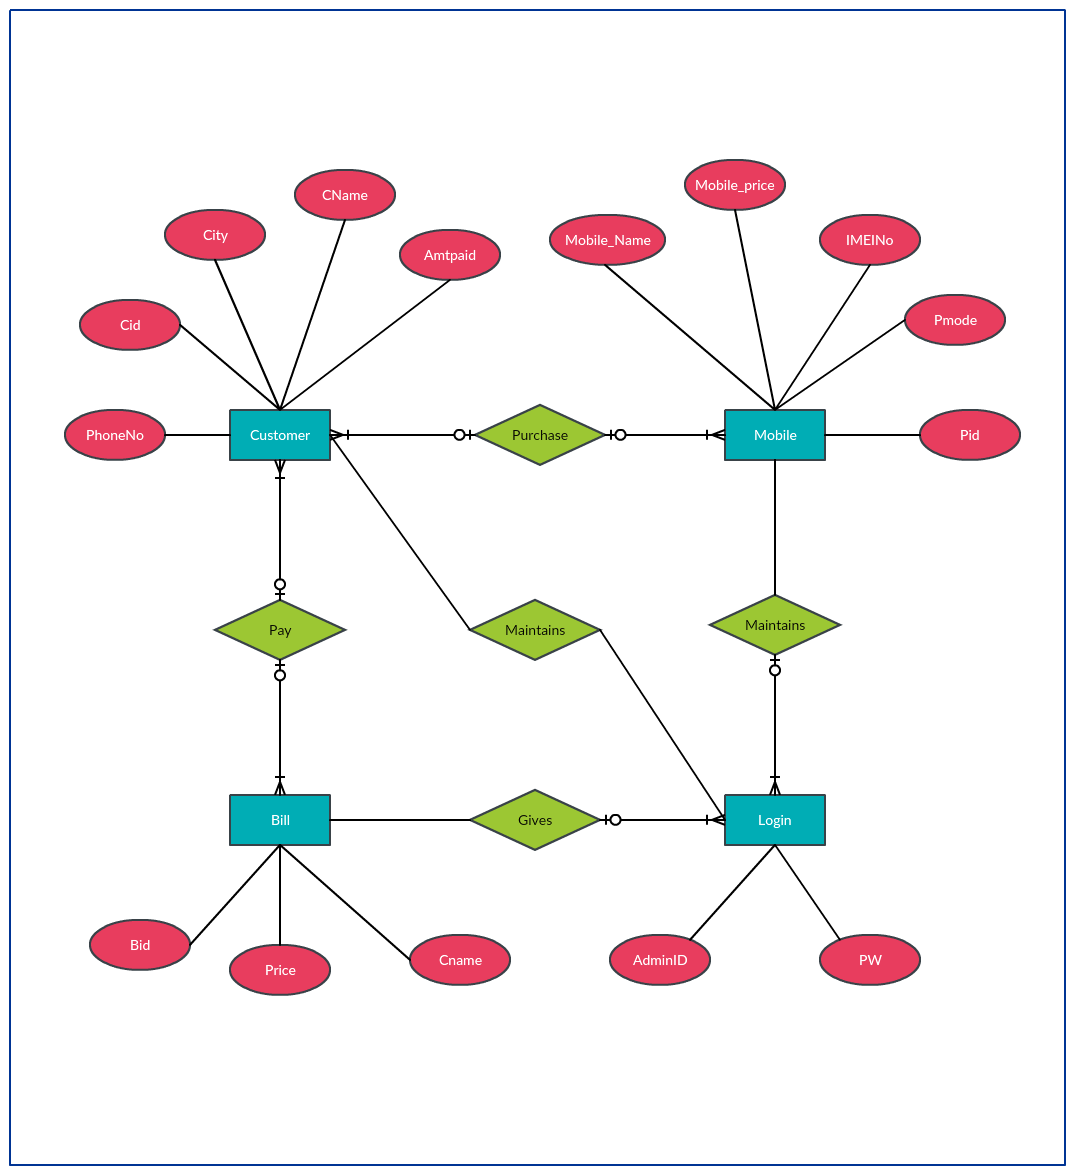 Entity relationship diagram to represent data